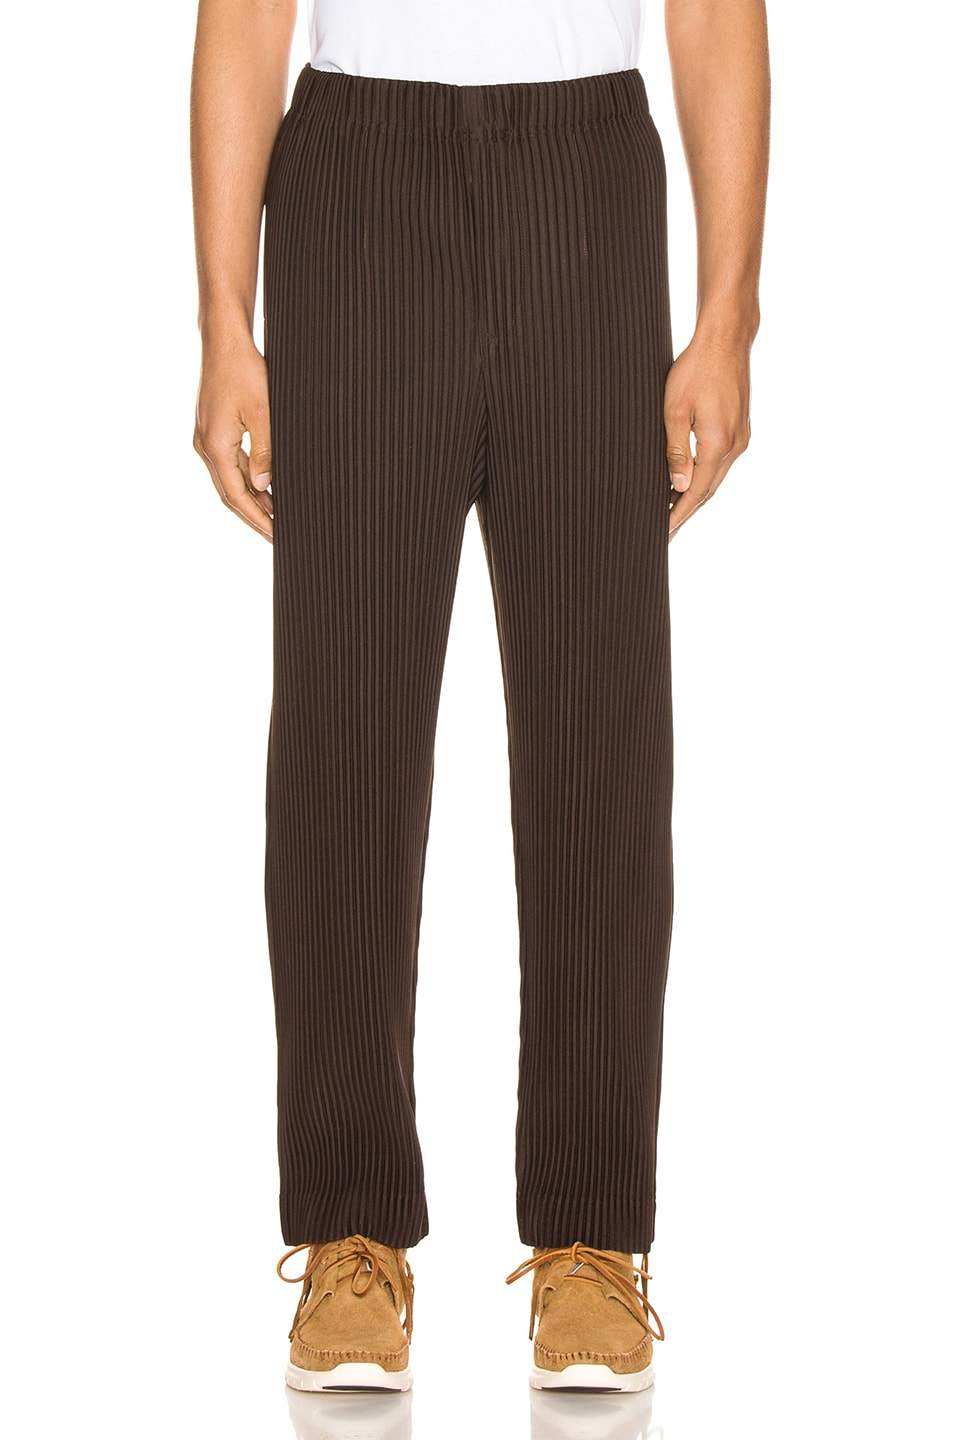 Image 1 of Issey Miyake Homme Plisse Trousers in Chocolate Brown